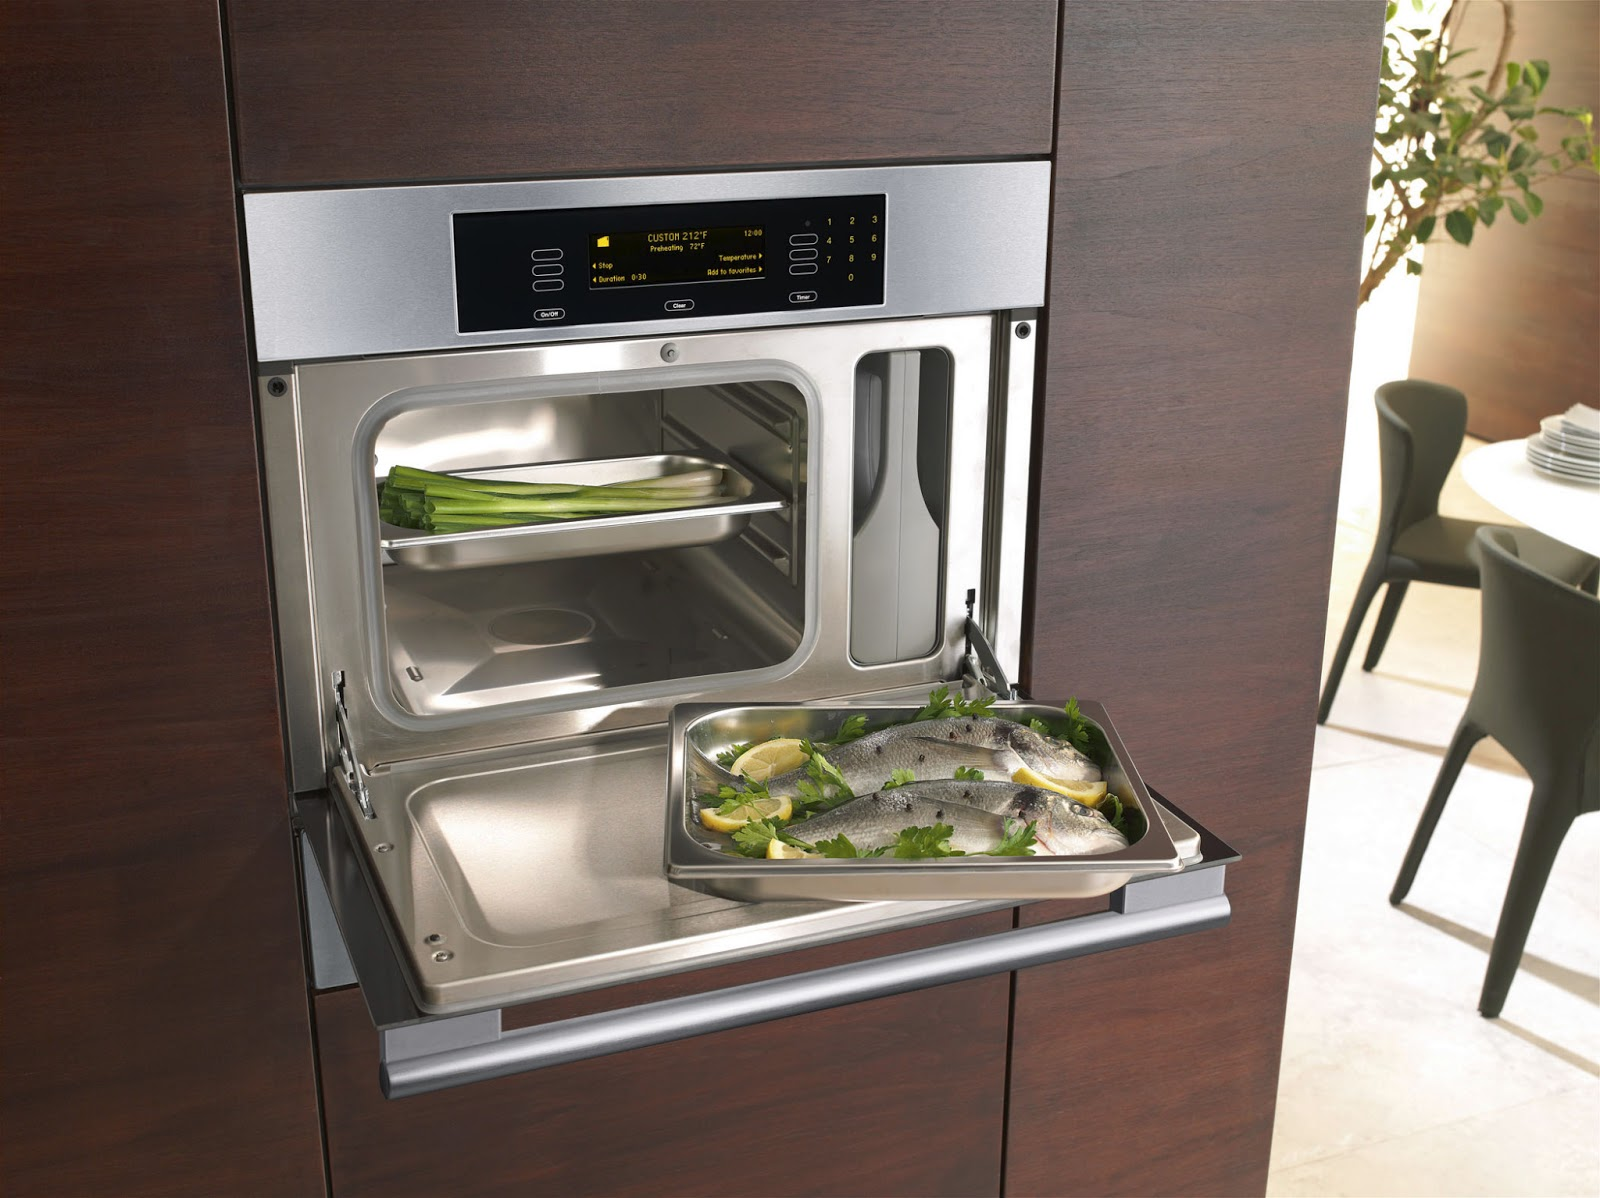 Time2design custom cabinetry and interior design kitchen for Steam fish in oven